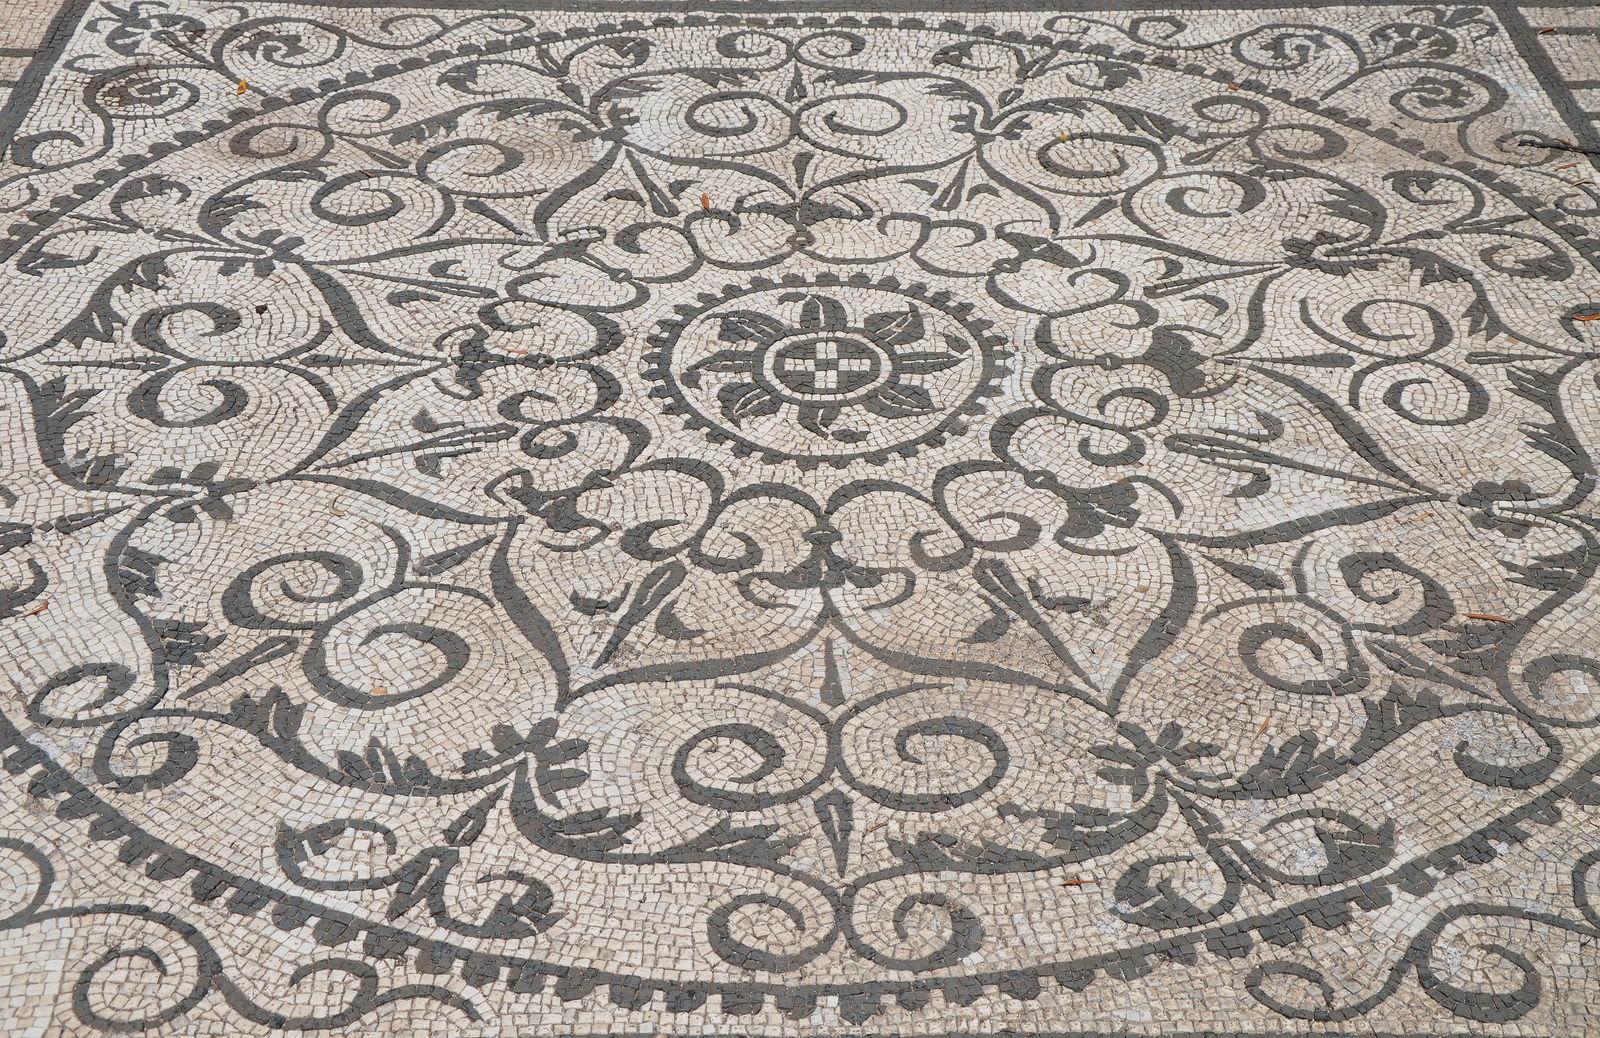 Art and sculptures from Hadrian's Villa: Black-and-white mosaics with geometric and floral motifs